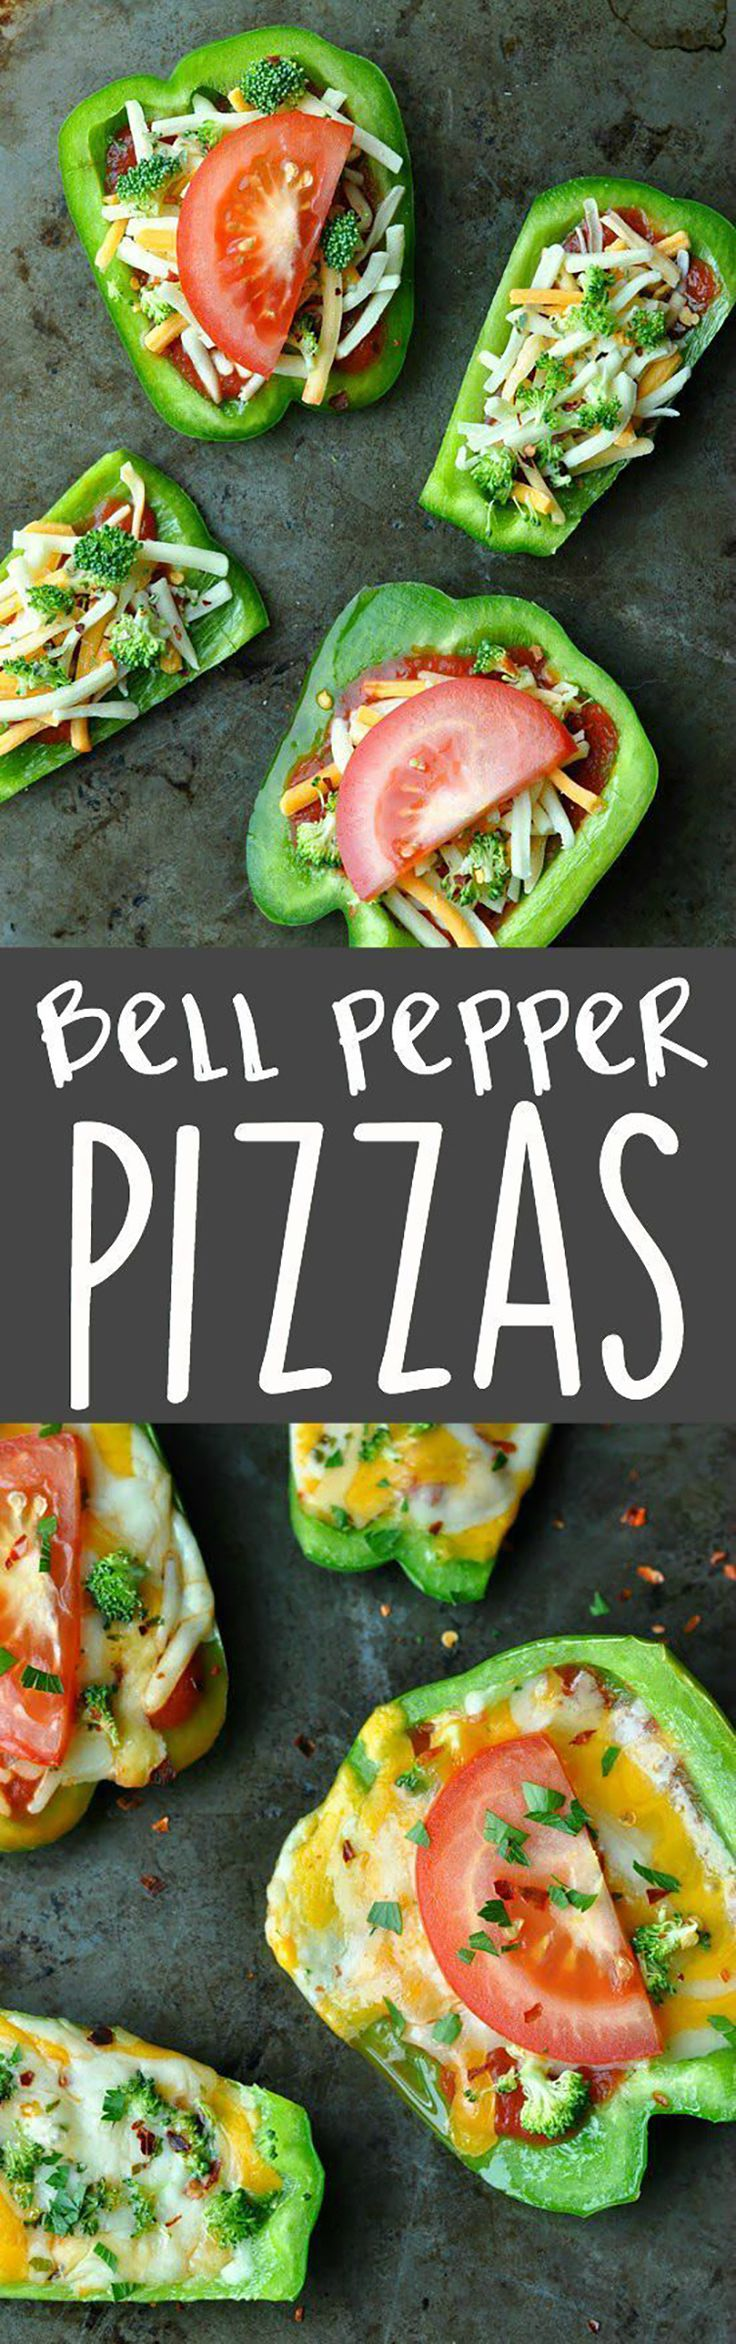 We're obsessed with these tasty Bell Pepper Pizzas that make your Pizza night guilt free! // 21 Day Fix // 21 Day Fix Approved // fitness // fitspo  motivation // Meal Prep //  Meal Plan // Sample Meal Plan// diet // nutrition // Inspiration // fitfood // fitfam // clean eating // recipe // recipes